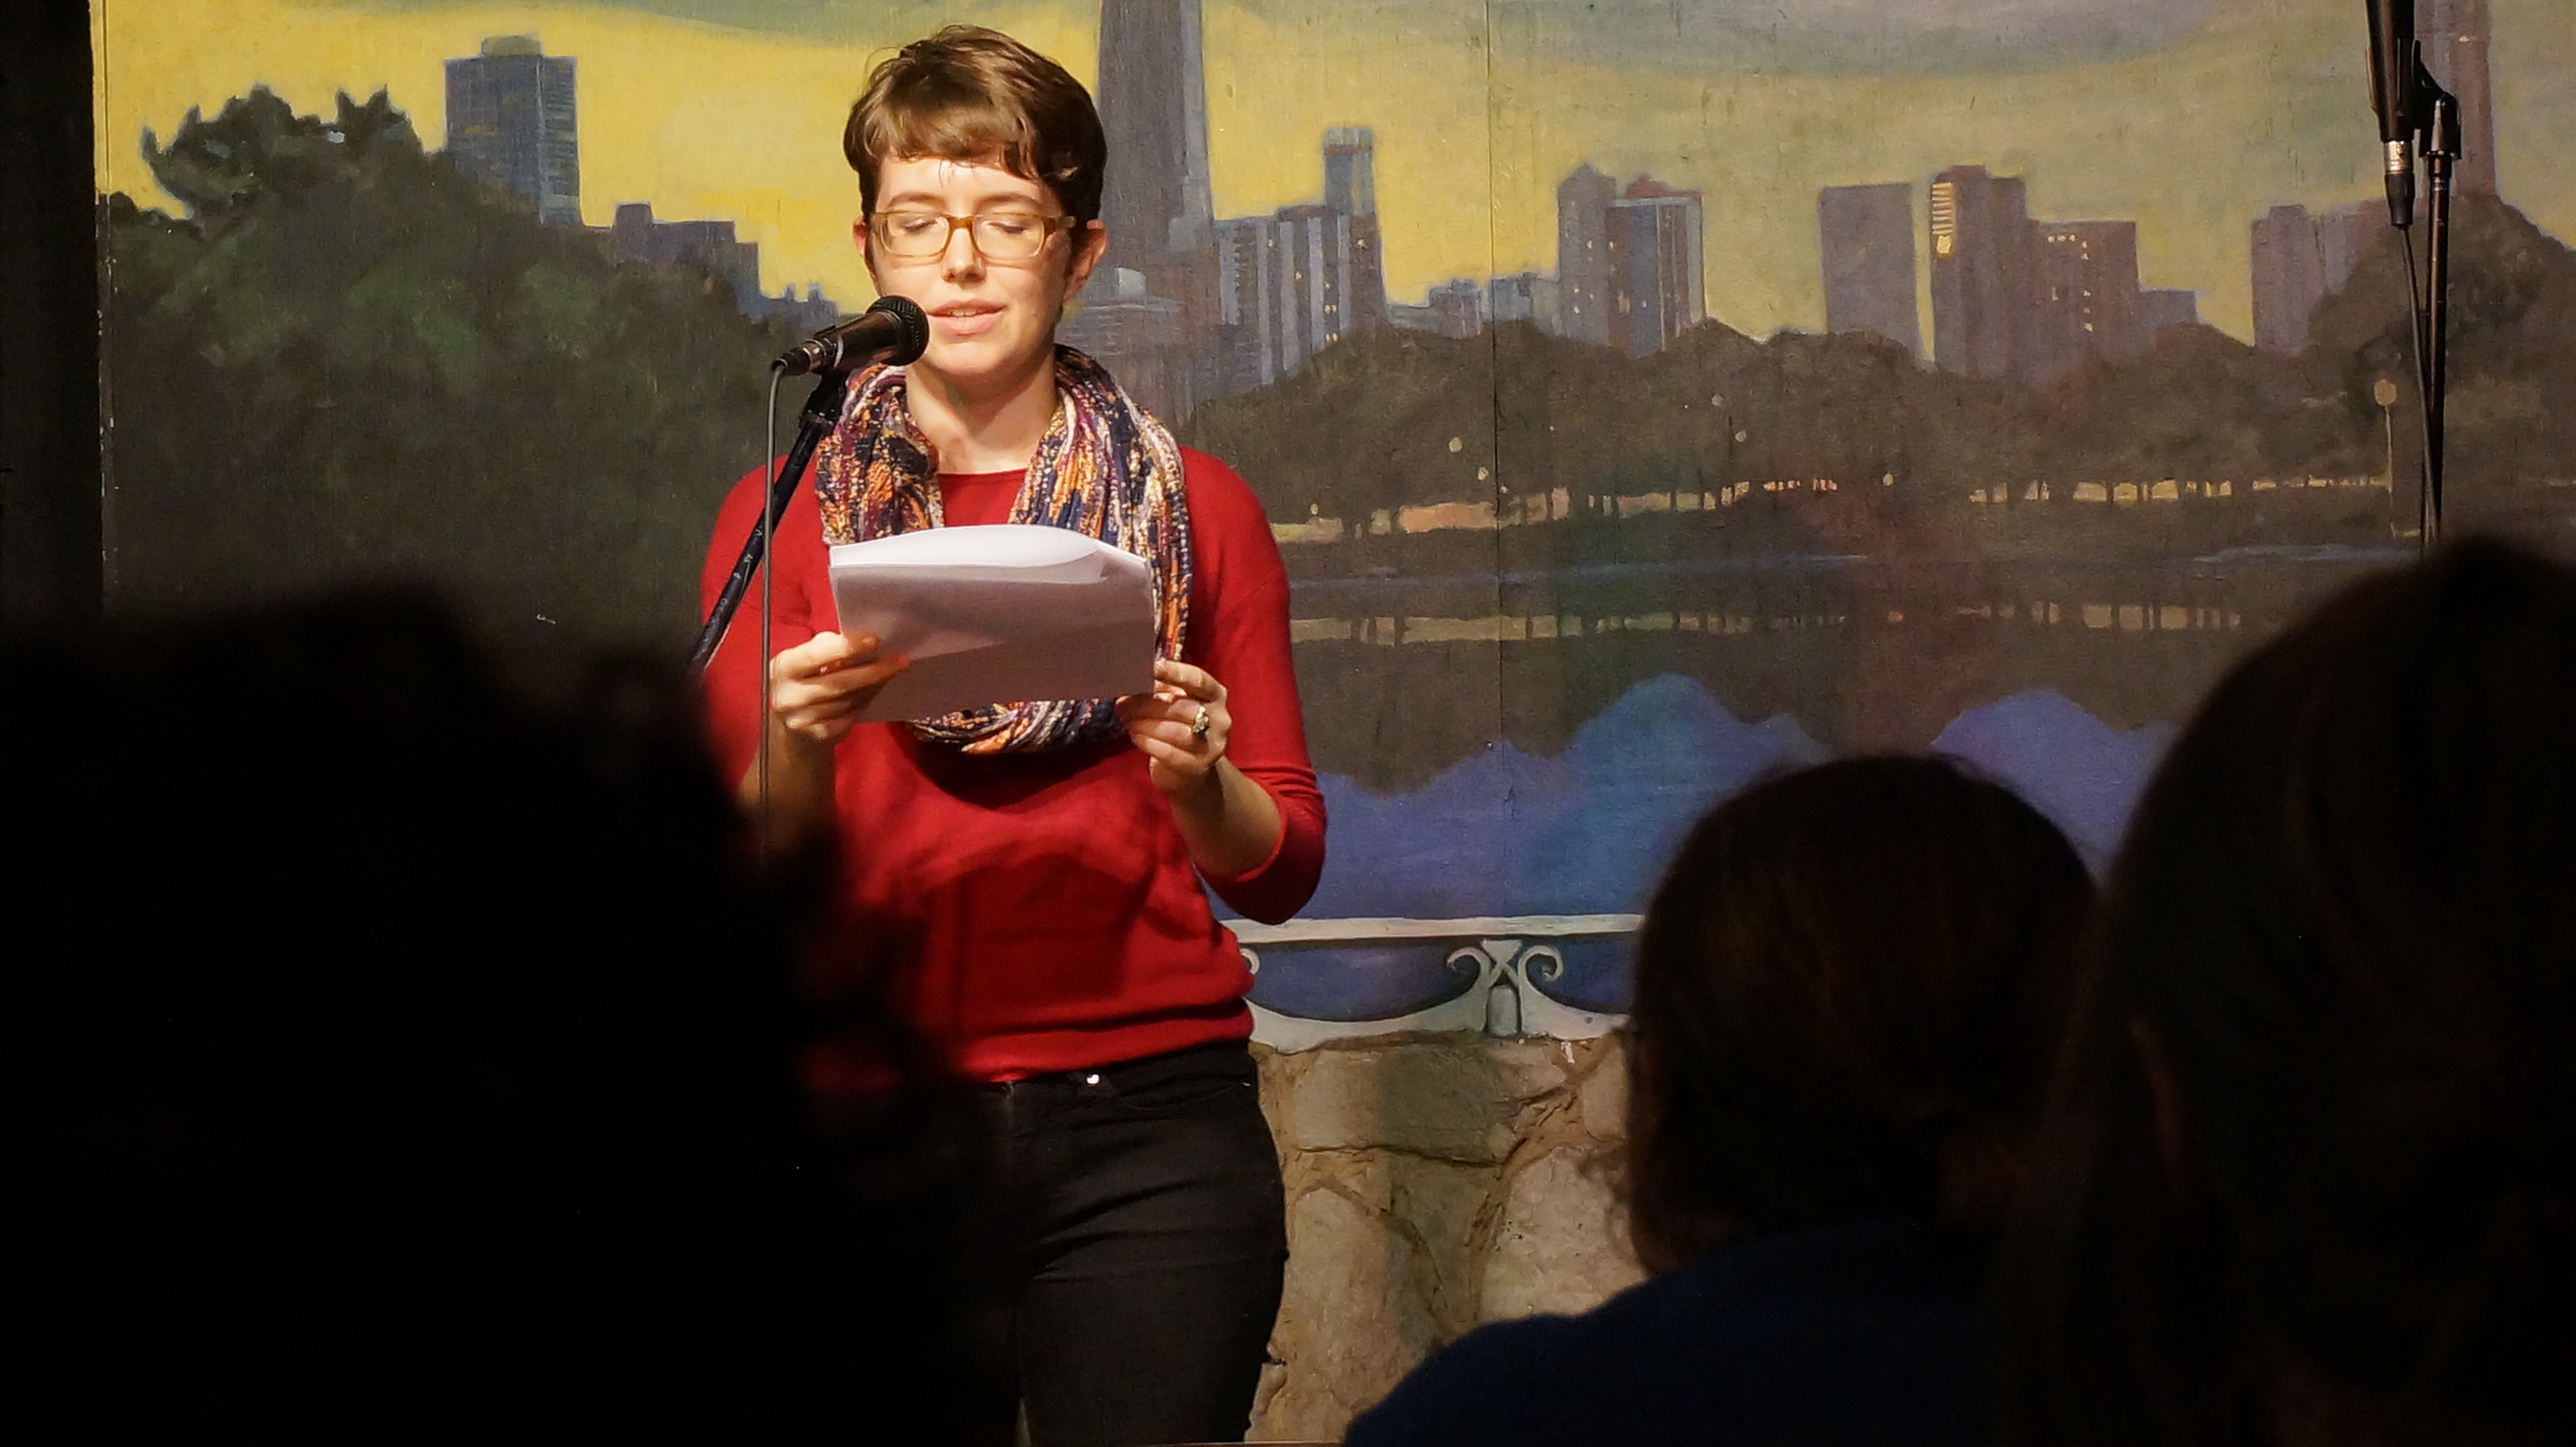 Image: Photo of [ReaderFirstName ReaderLastName] performing at Miss Spoken at the Gallery Cabaret. The reader stands on-stage, speaking into the microphone and looking down at a set of papers. [ReaderLastName] wears a red shirt, dark pants, a multi-colored scarf, and glasses. The reader appears in medium-long-shot near the left-center of the frame. Painted on the stage wall behind the reader is a scene showing Chicago's skyline, as if viewed from behind a stone wall. In the foreground, the backs of a few audience members' heads are visible. Photo by [Photographer]. Courtesy of Miss Spoken.